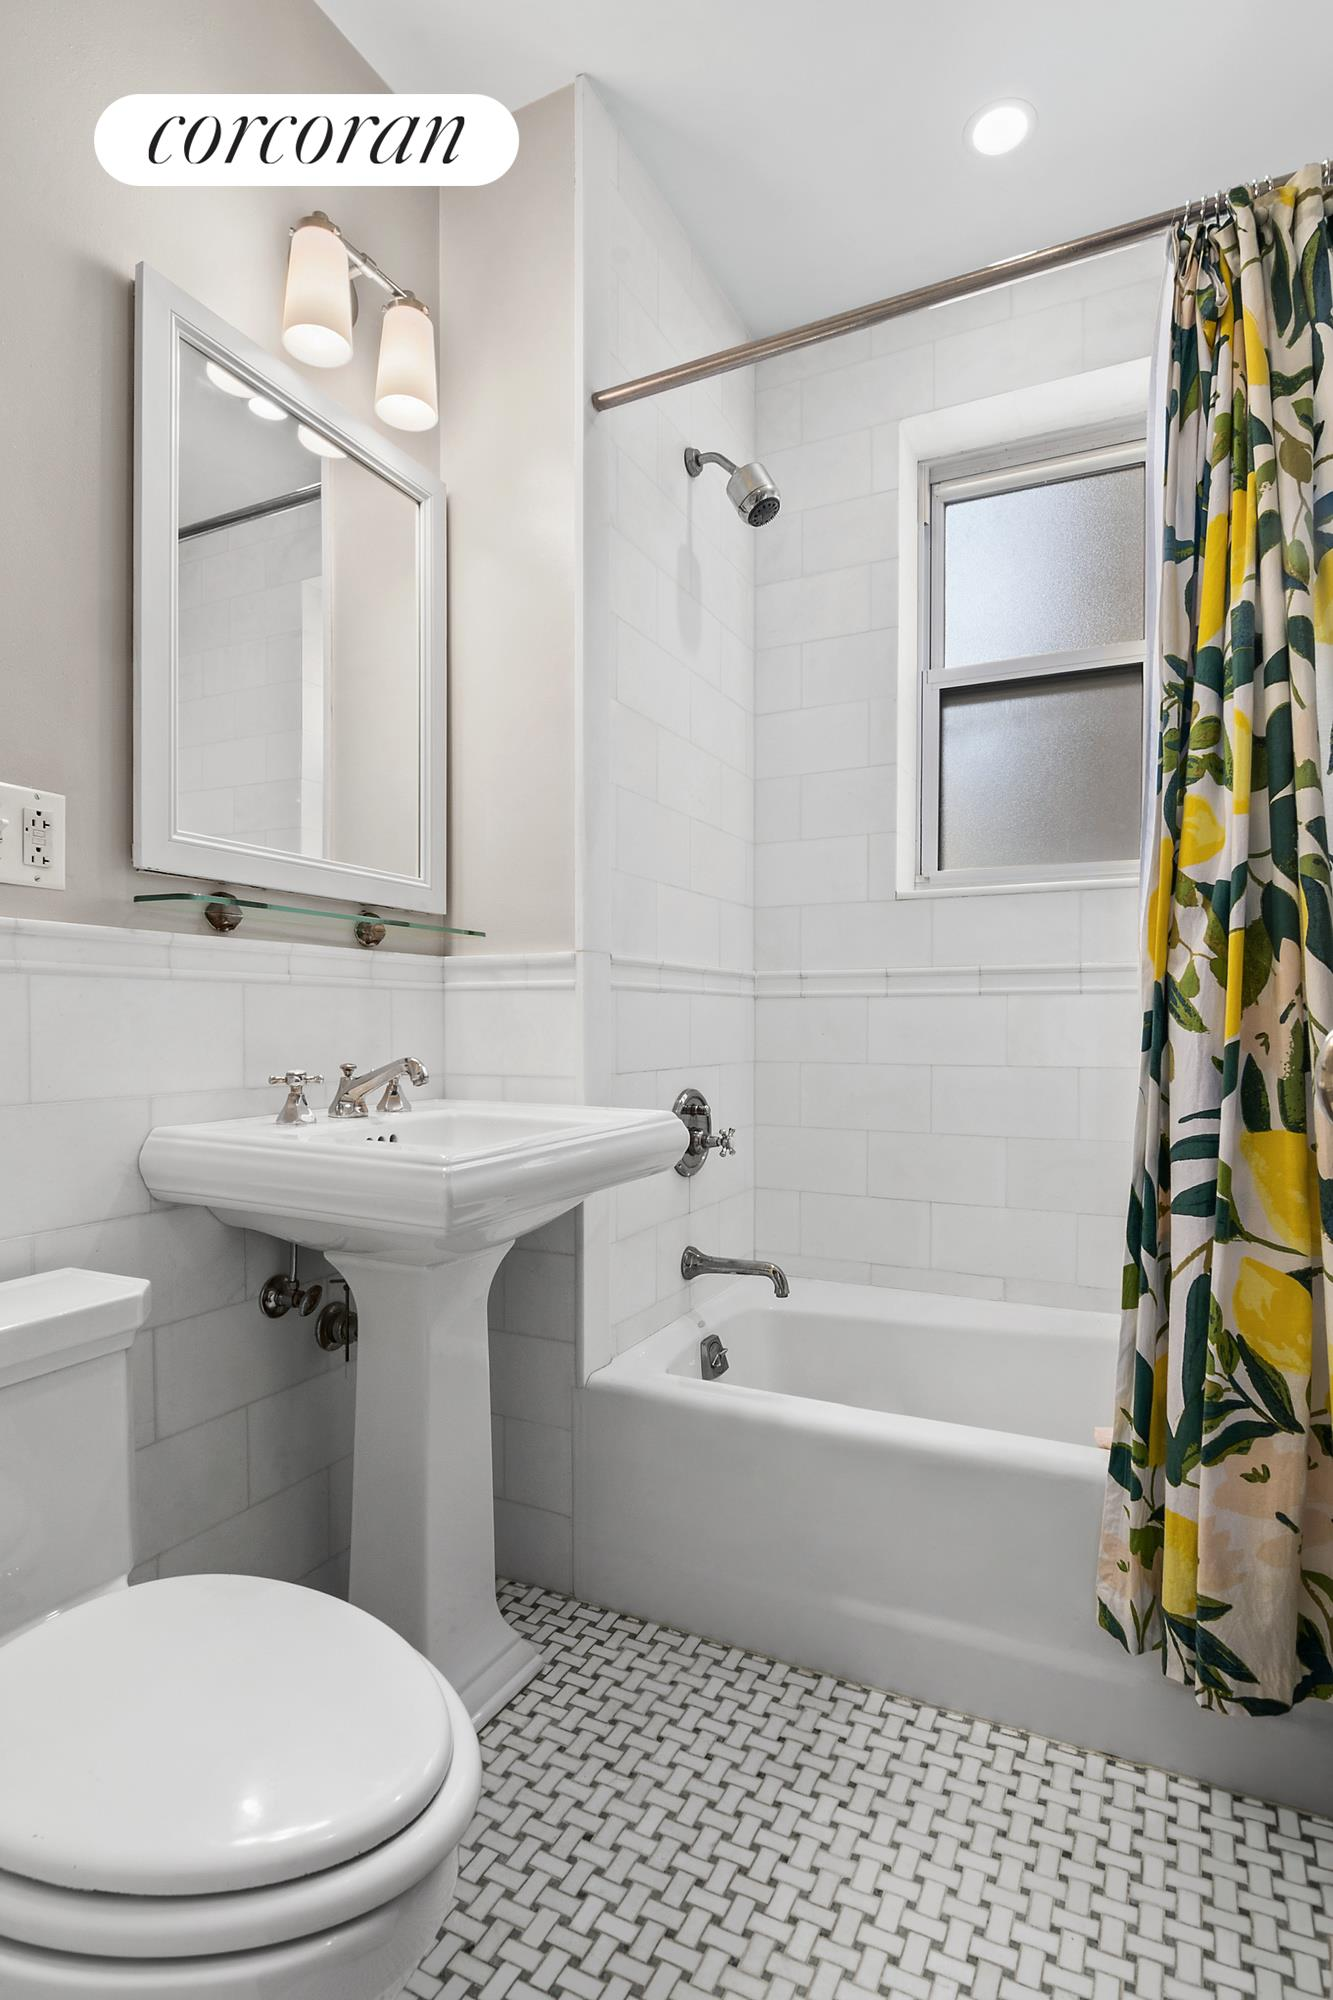 215 West 88th Street Upper West Side New York NY 10024